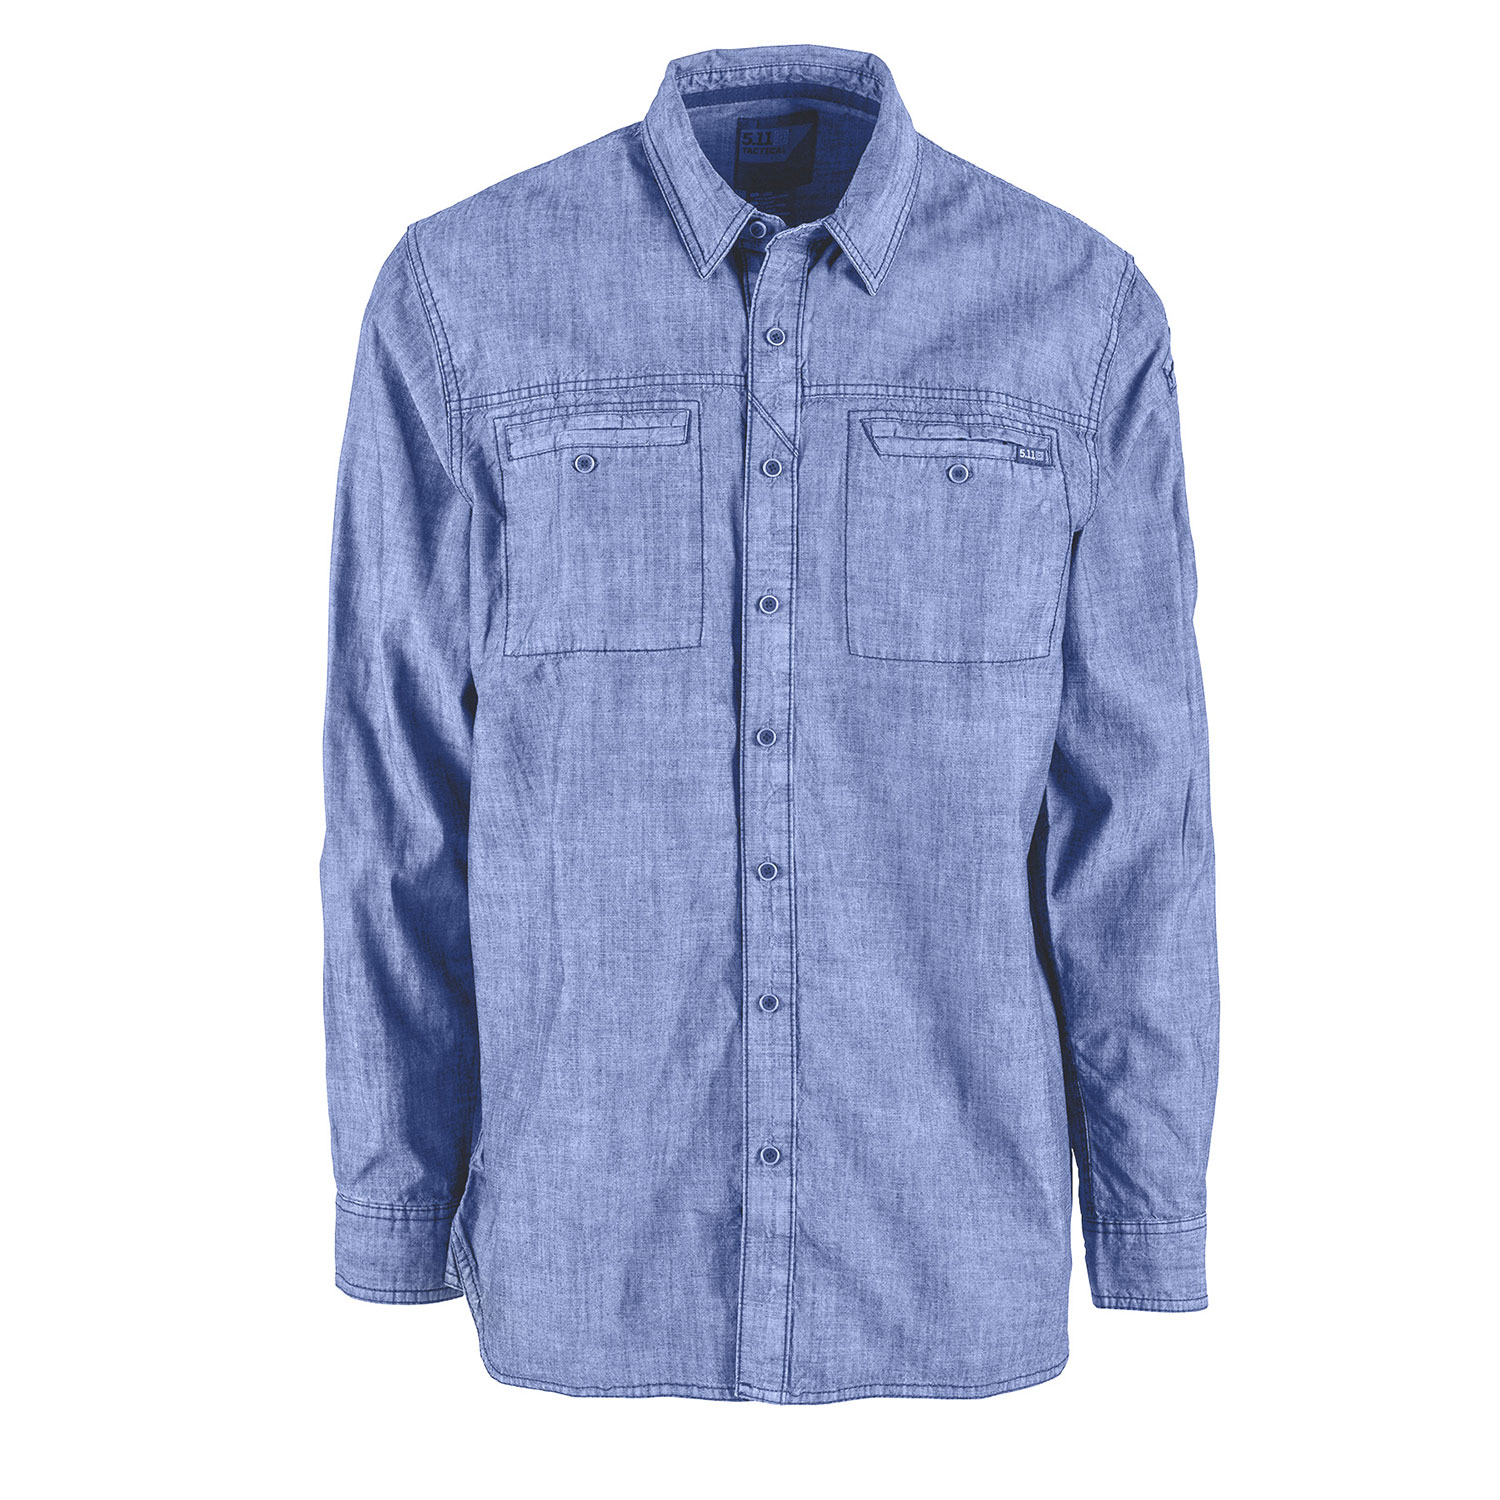 5.11 Rambler Long Sleeve Shirt